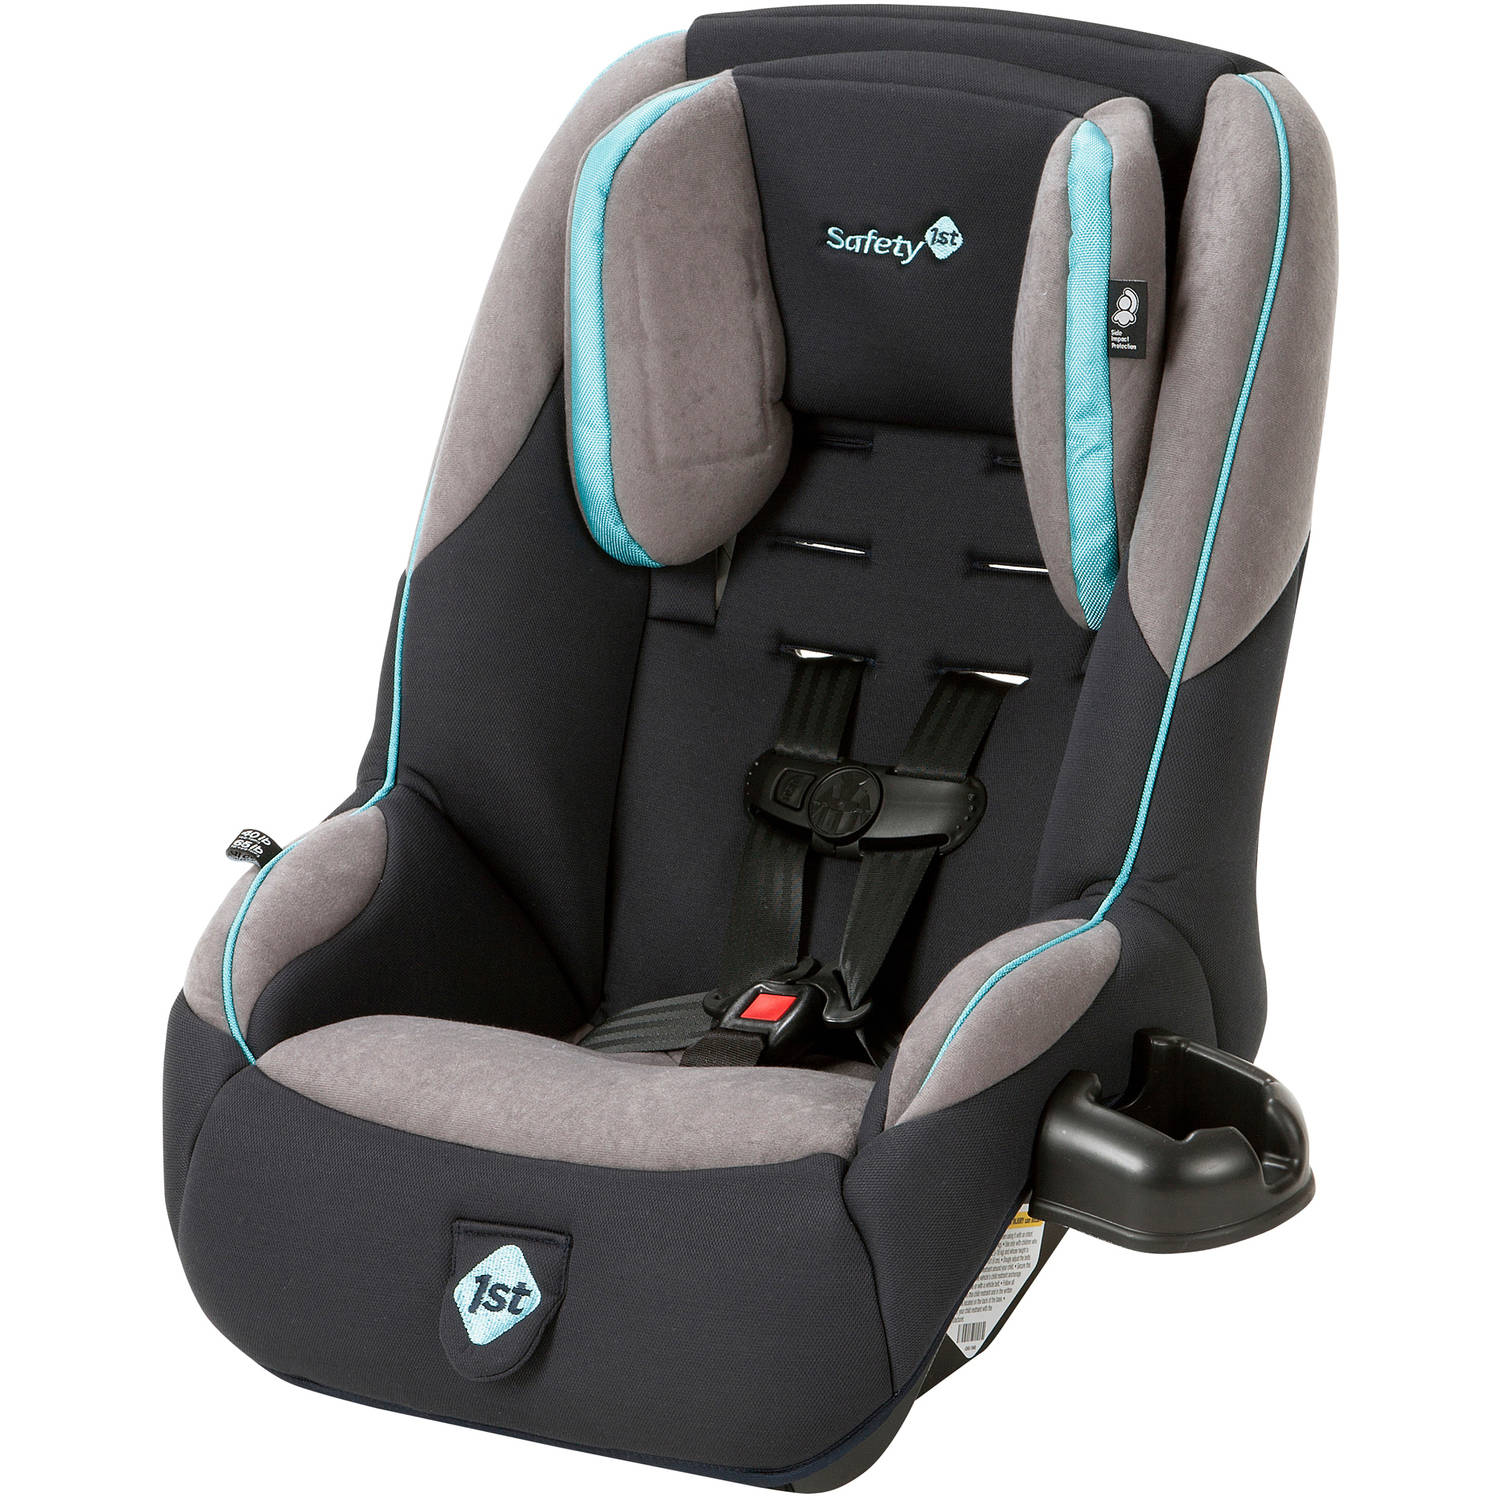 Dorel Car Seat Recall List Brokeasshome Com